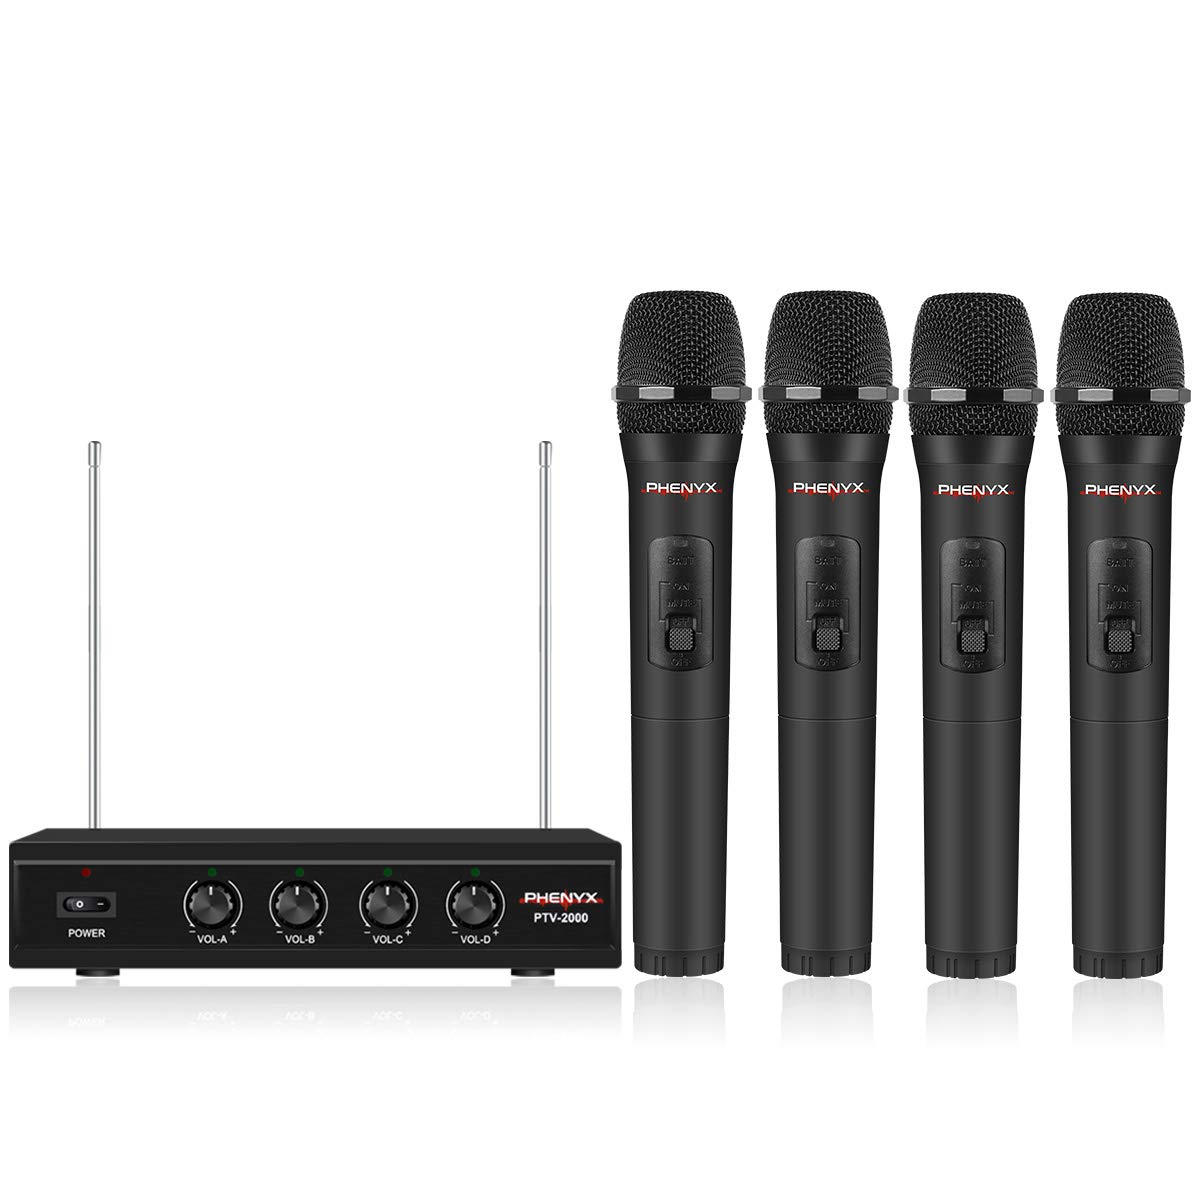 4 Channel VHF Wireless Microphone, Phenyx Pro 4-Channel Wireless Microphone System with 4 Handheld Mics, Metal Receiver, Long Distance Operation, Ideal for Church, Party, Outdoor Events (PTV-2000A) by Phenyx Pro